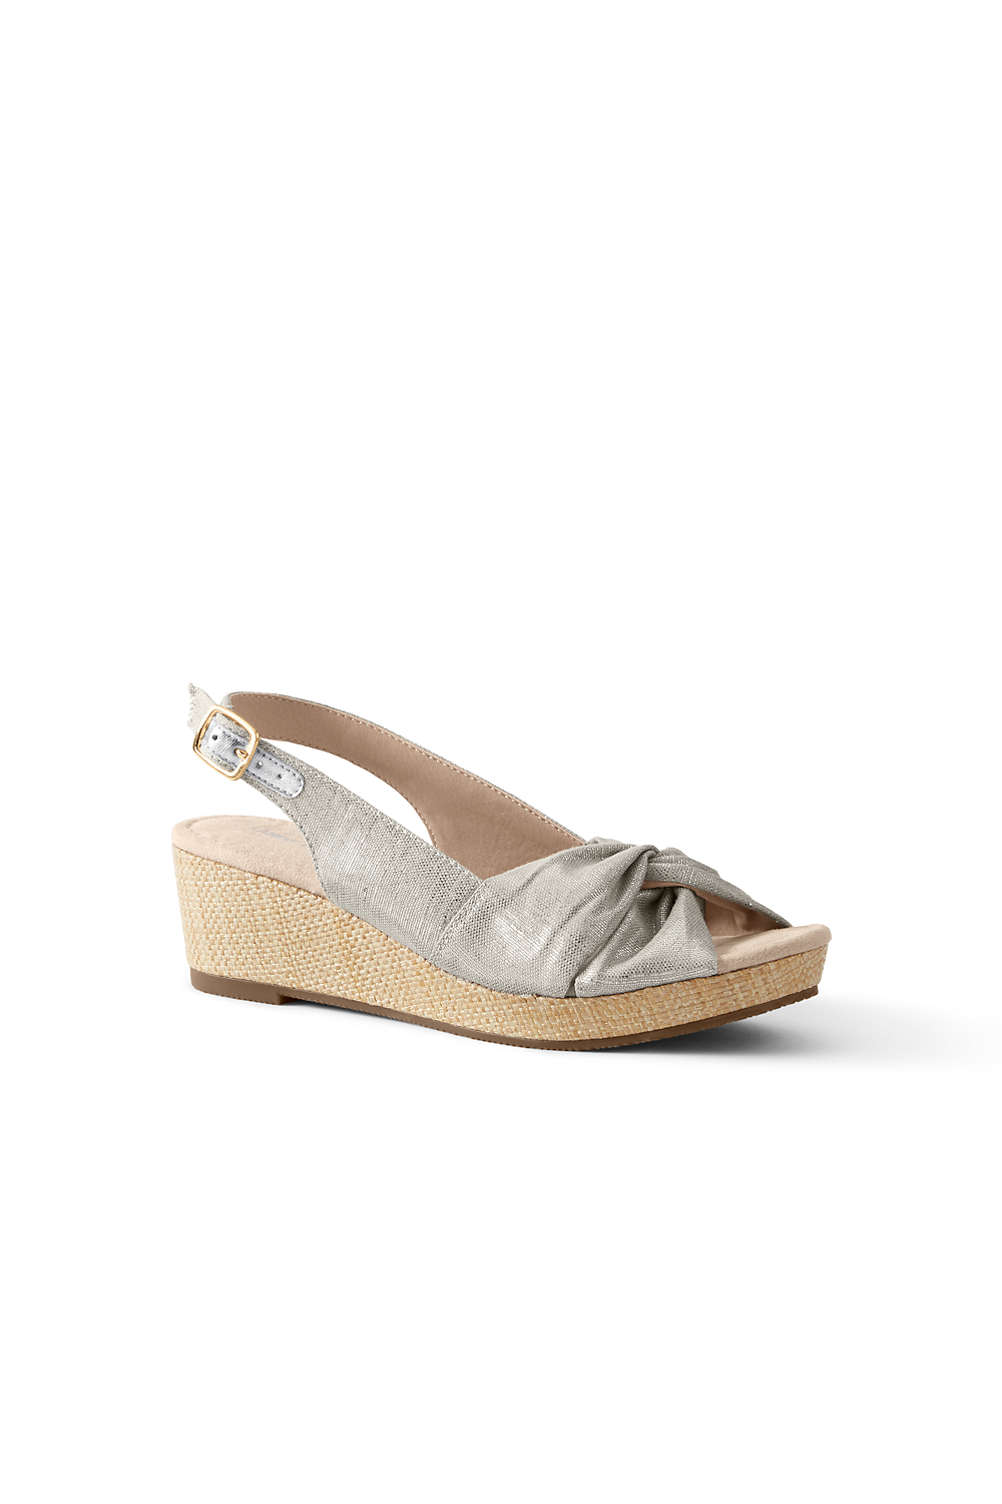 4a5feb713e Women's Canvas Slingback Wedge Sandals from Lands' End